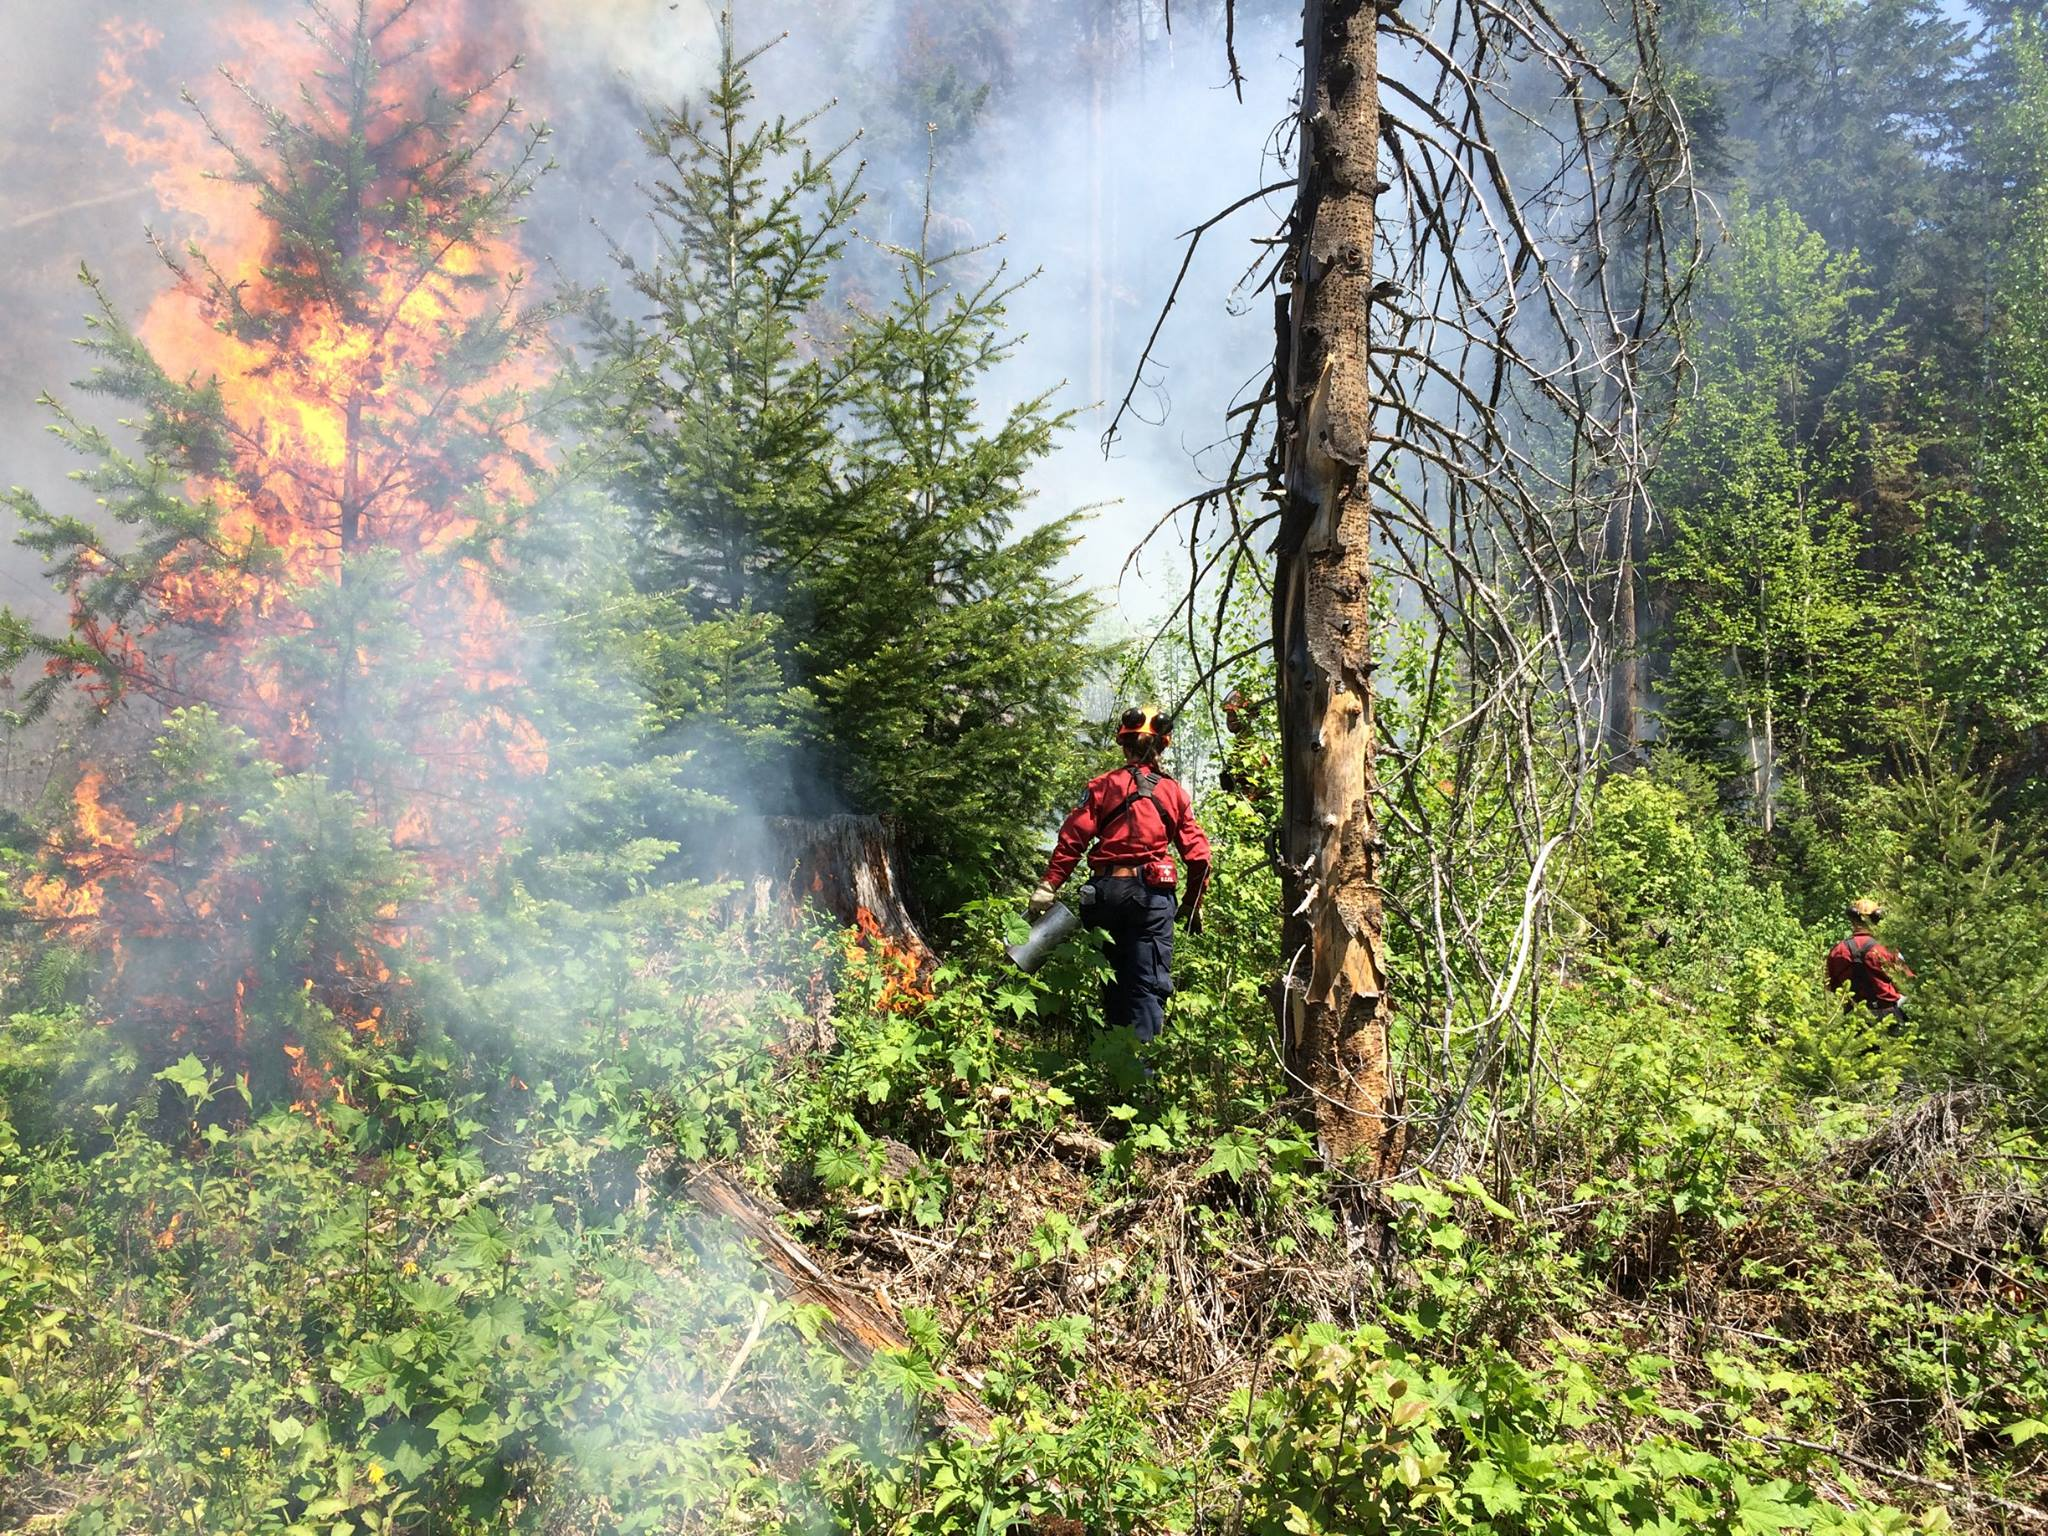 Allie Lake wildfire now 100% contained, B.C Wildfire Service still battling Xusum Creek blaze